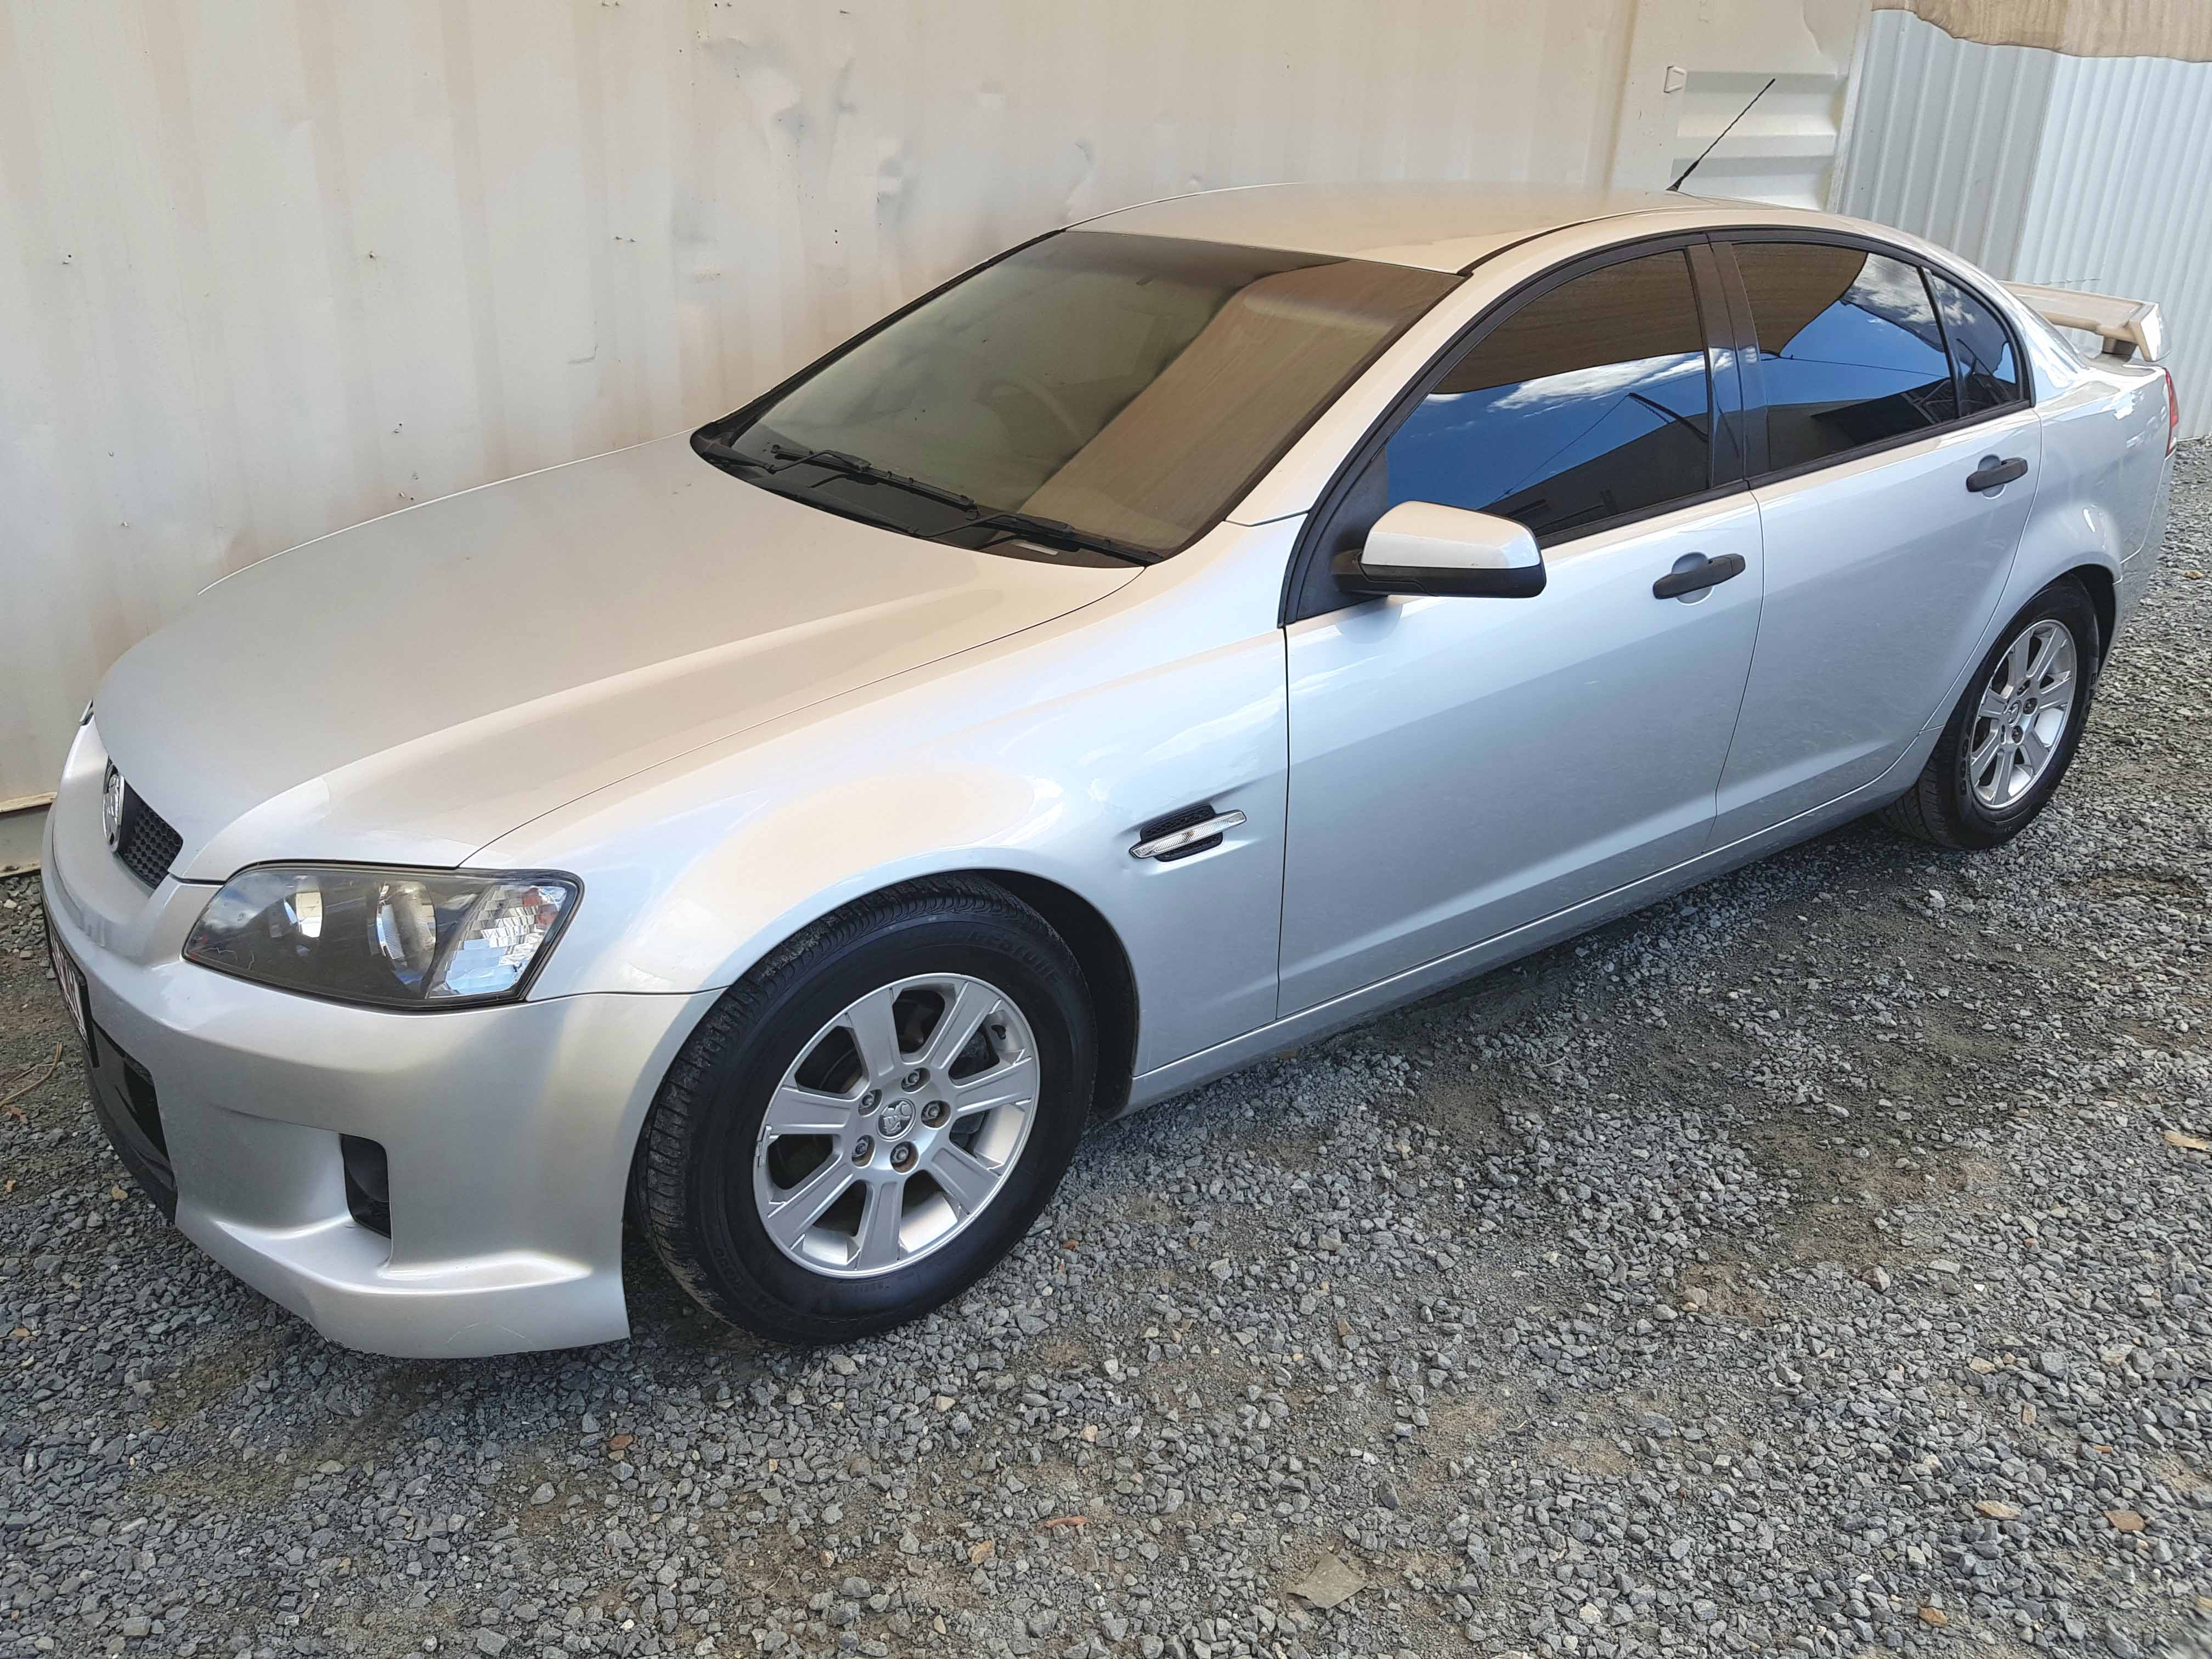 Automatic-Cars-Holden-Commodore-Sedan-2009-for-sale-3